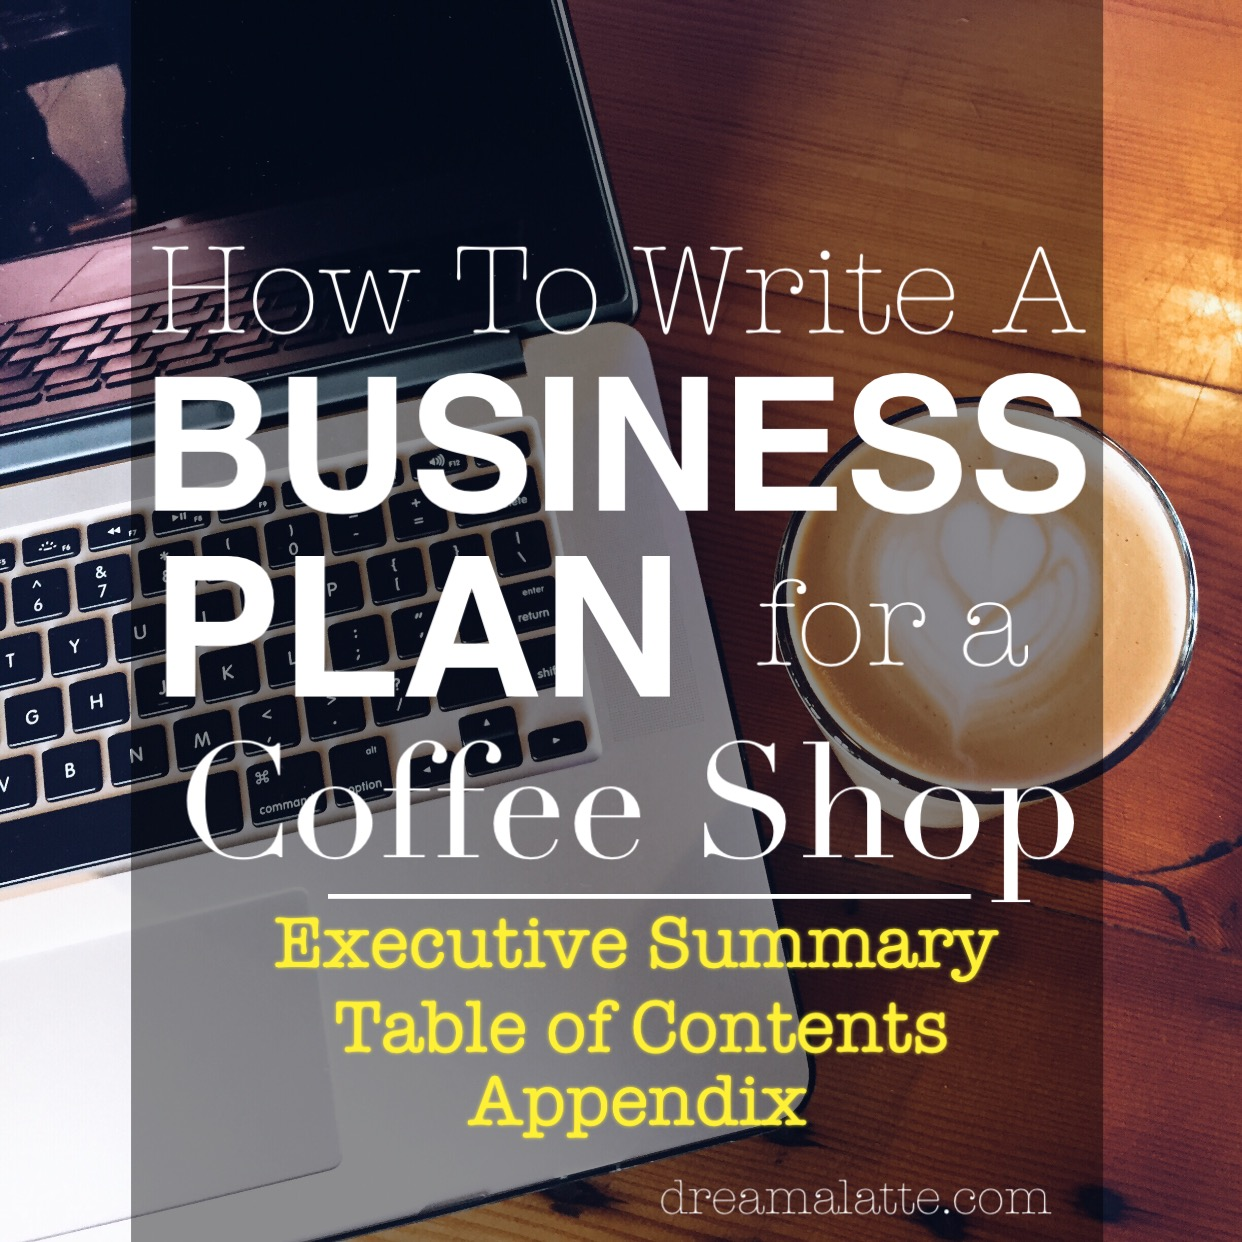 Coffee Shop Business Plan Executive Summary DreamaLatte